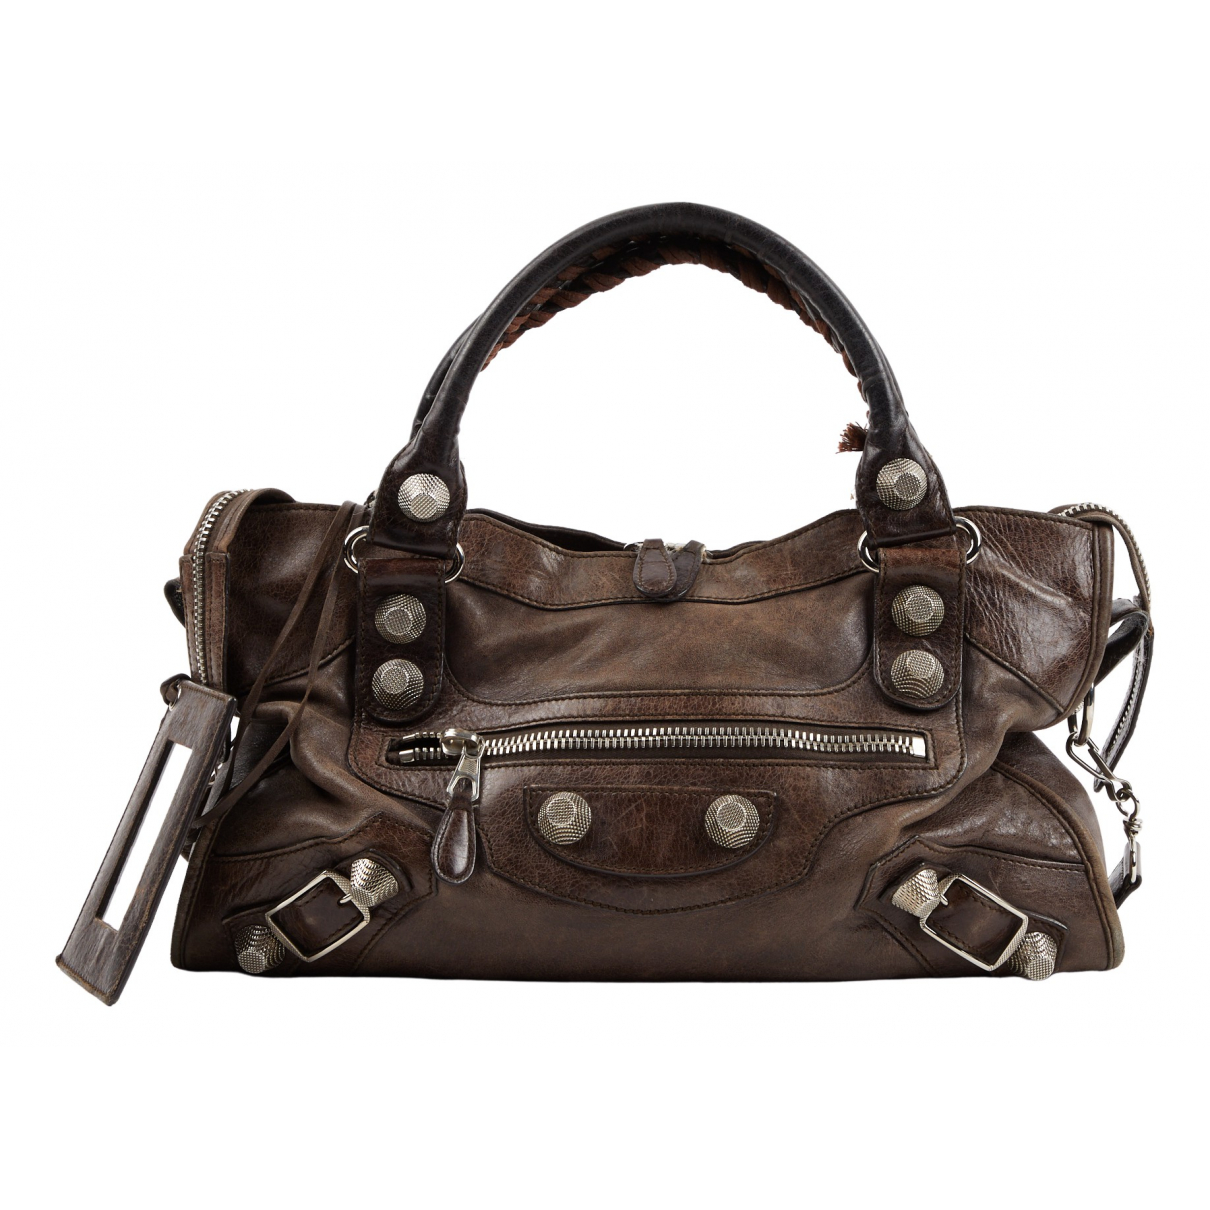 Balenciaga City Brown Leather handbag for Women \N